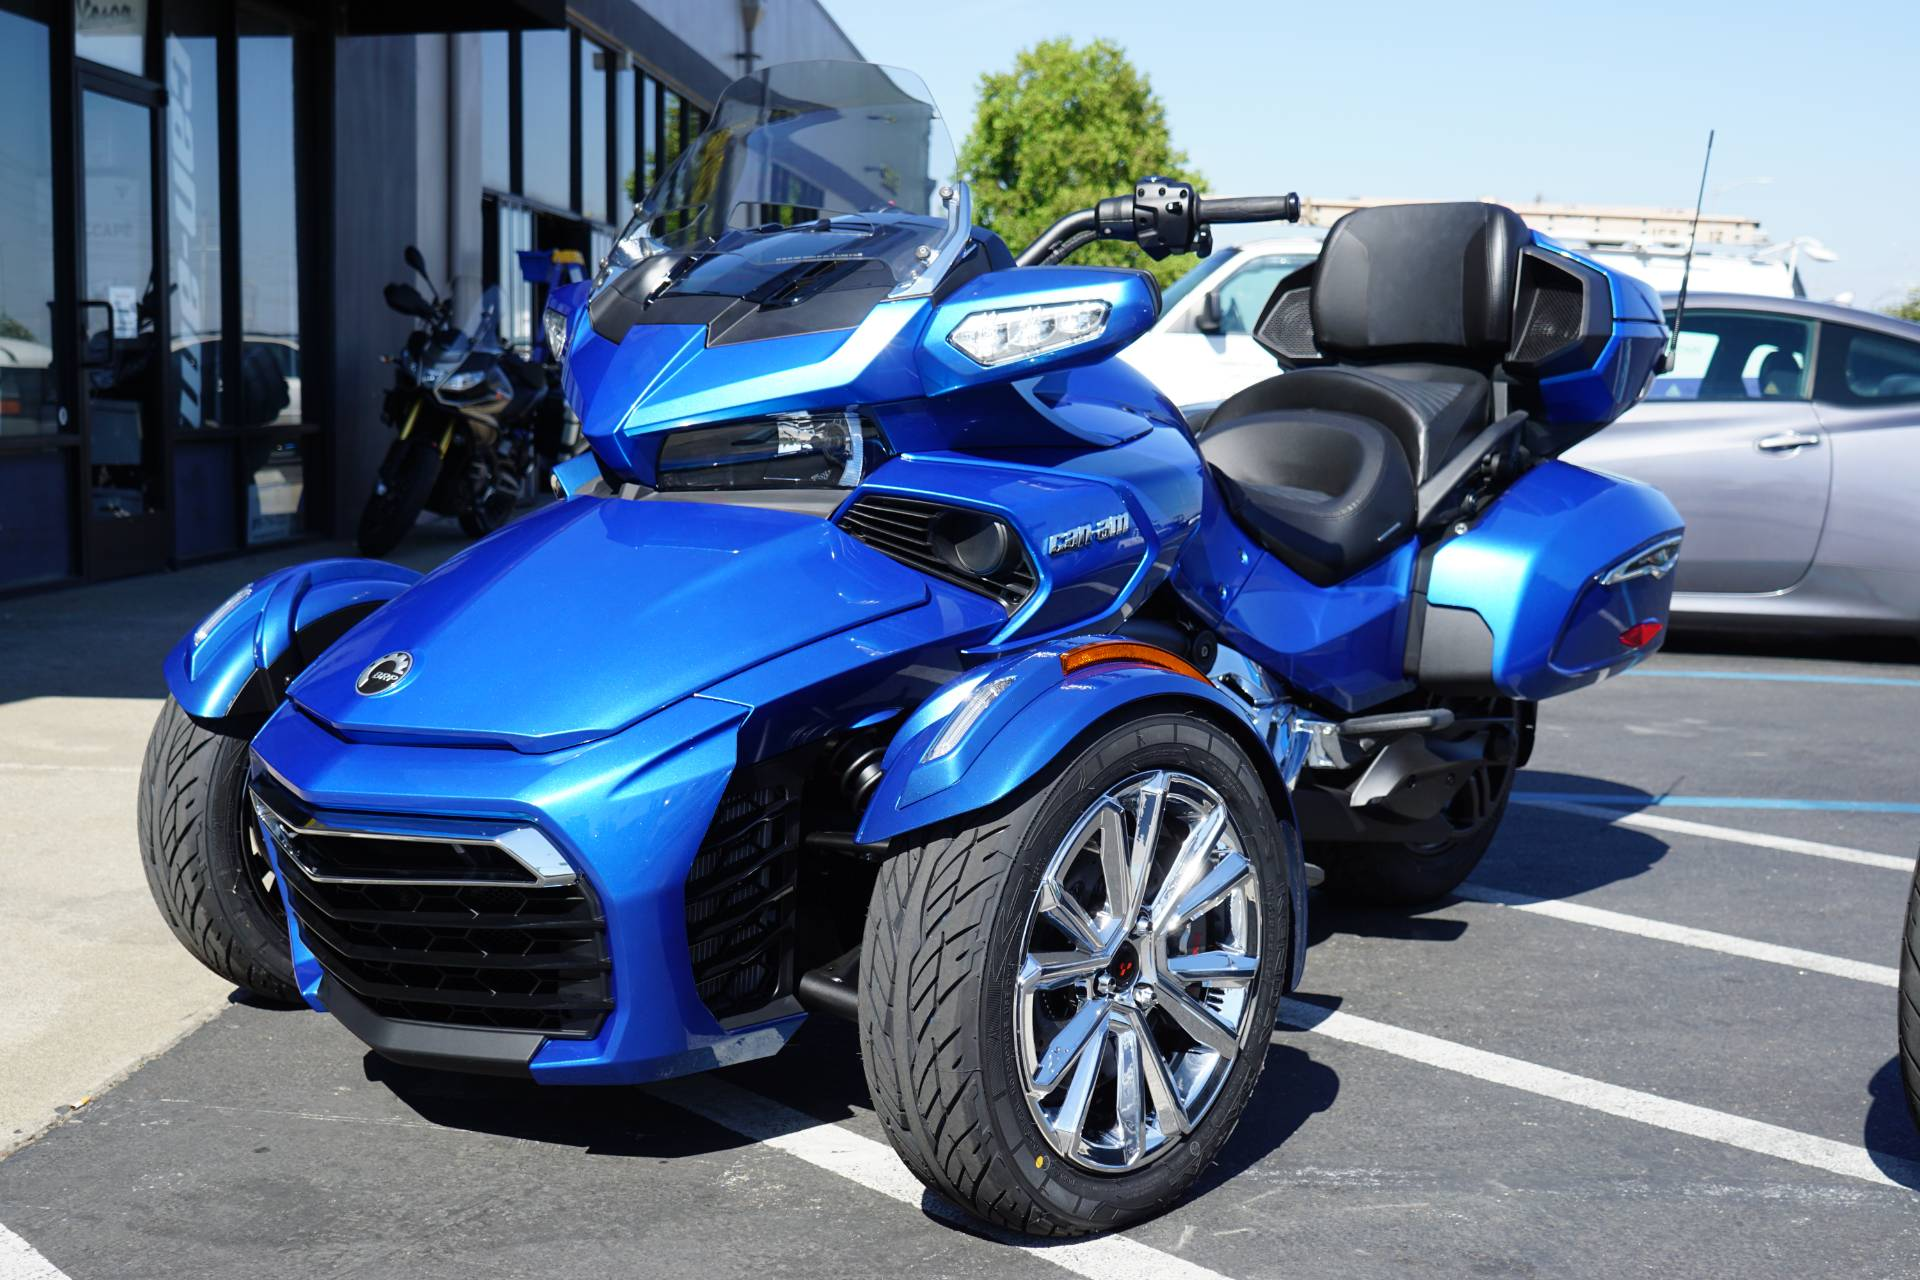 new 2018 can am spyder f3 limited motorcycles in elk grove ca stock number cans000654. Black Bedroom Furniture Sets. Home Design Ideas